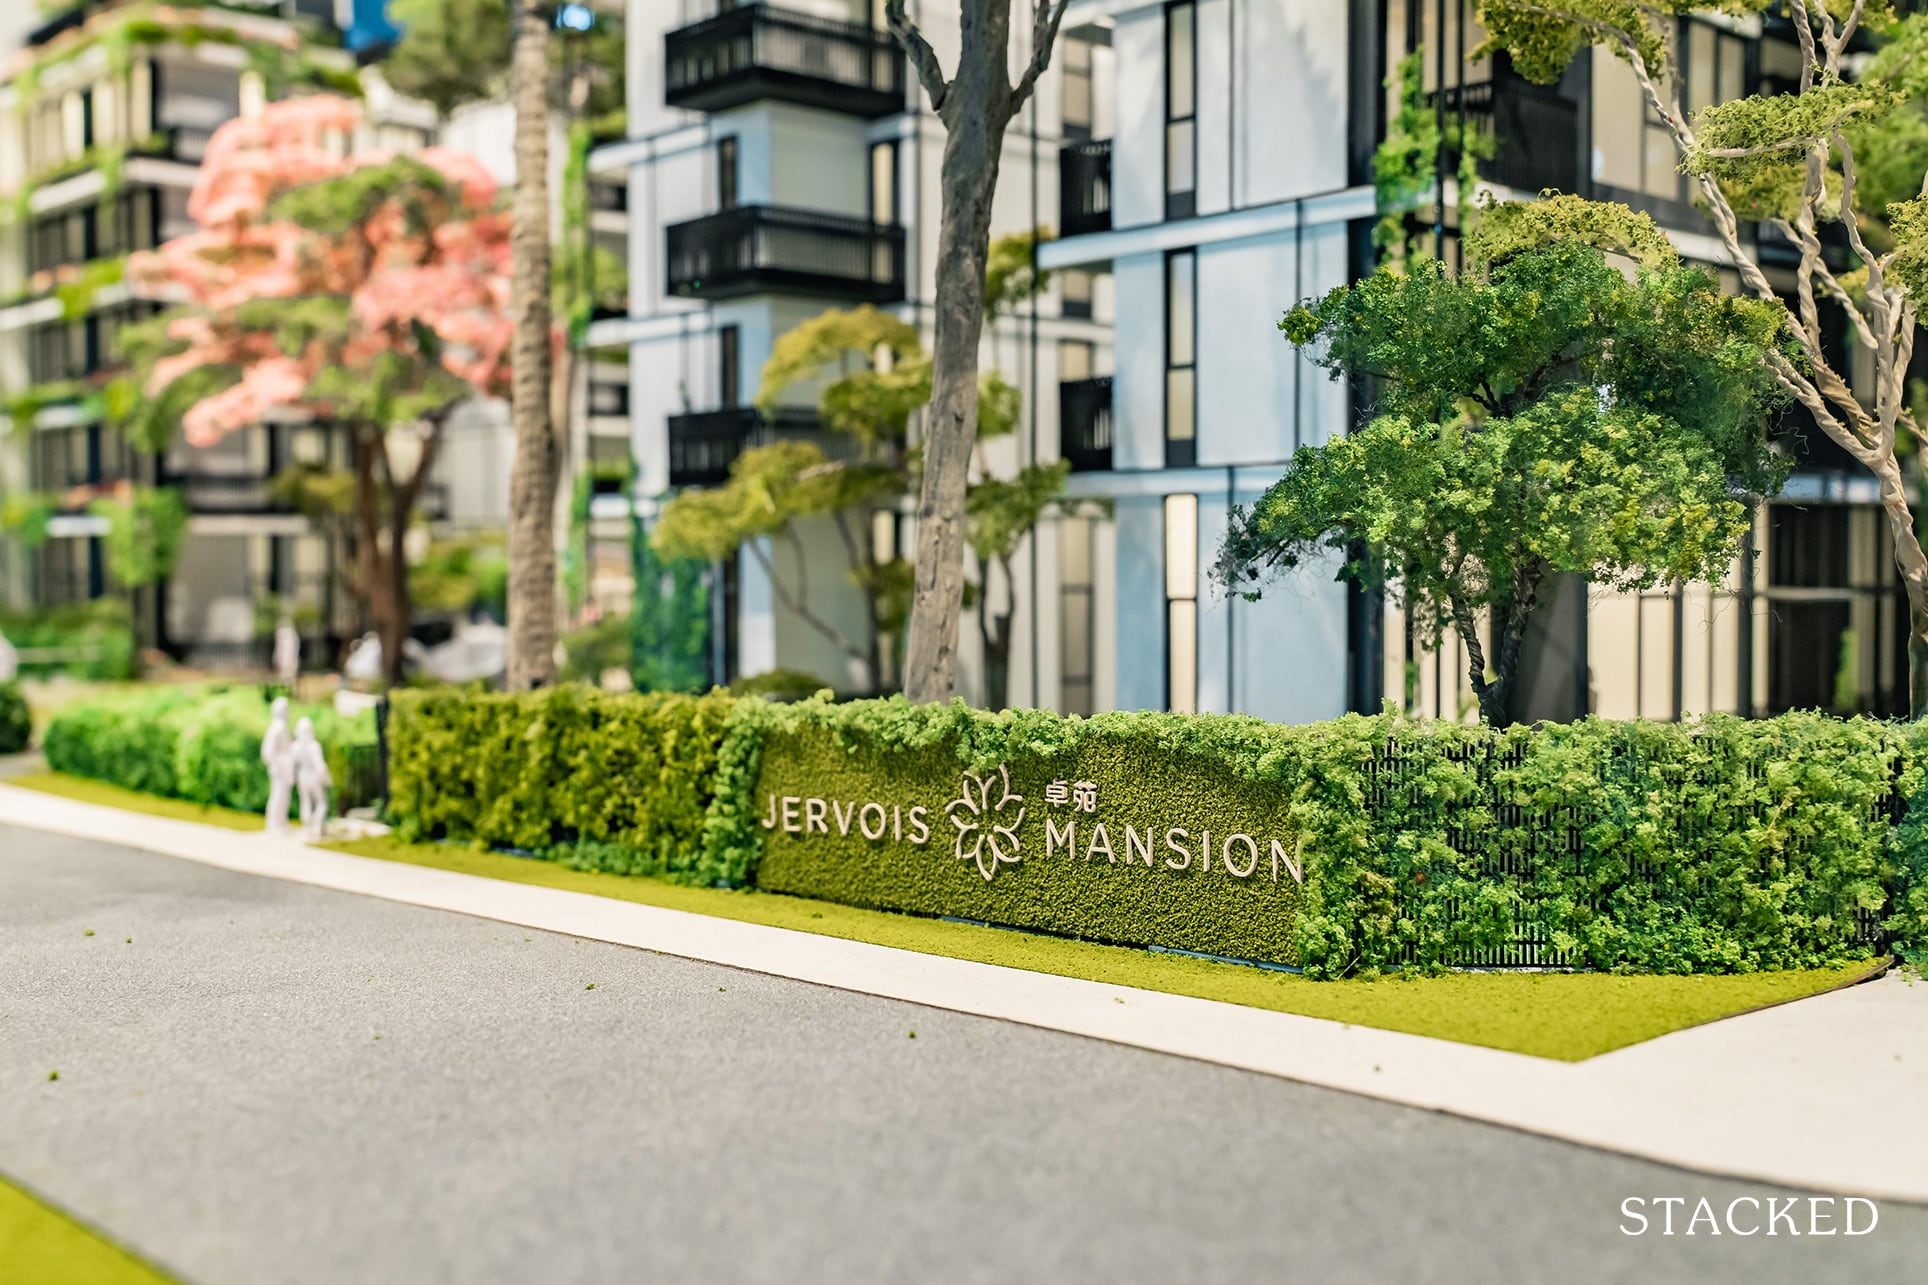 jervois mansions review 1